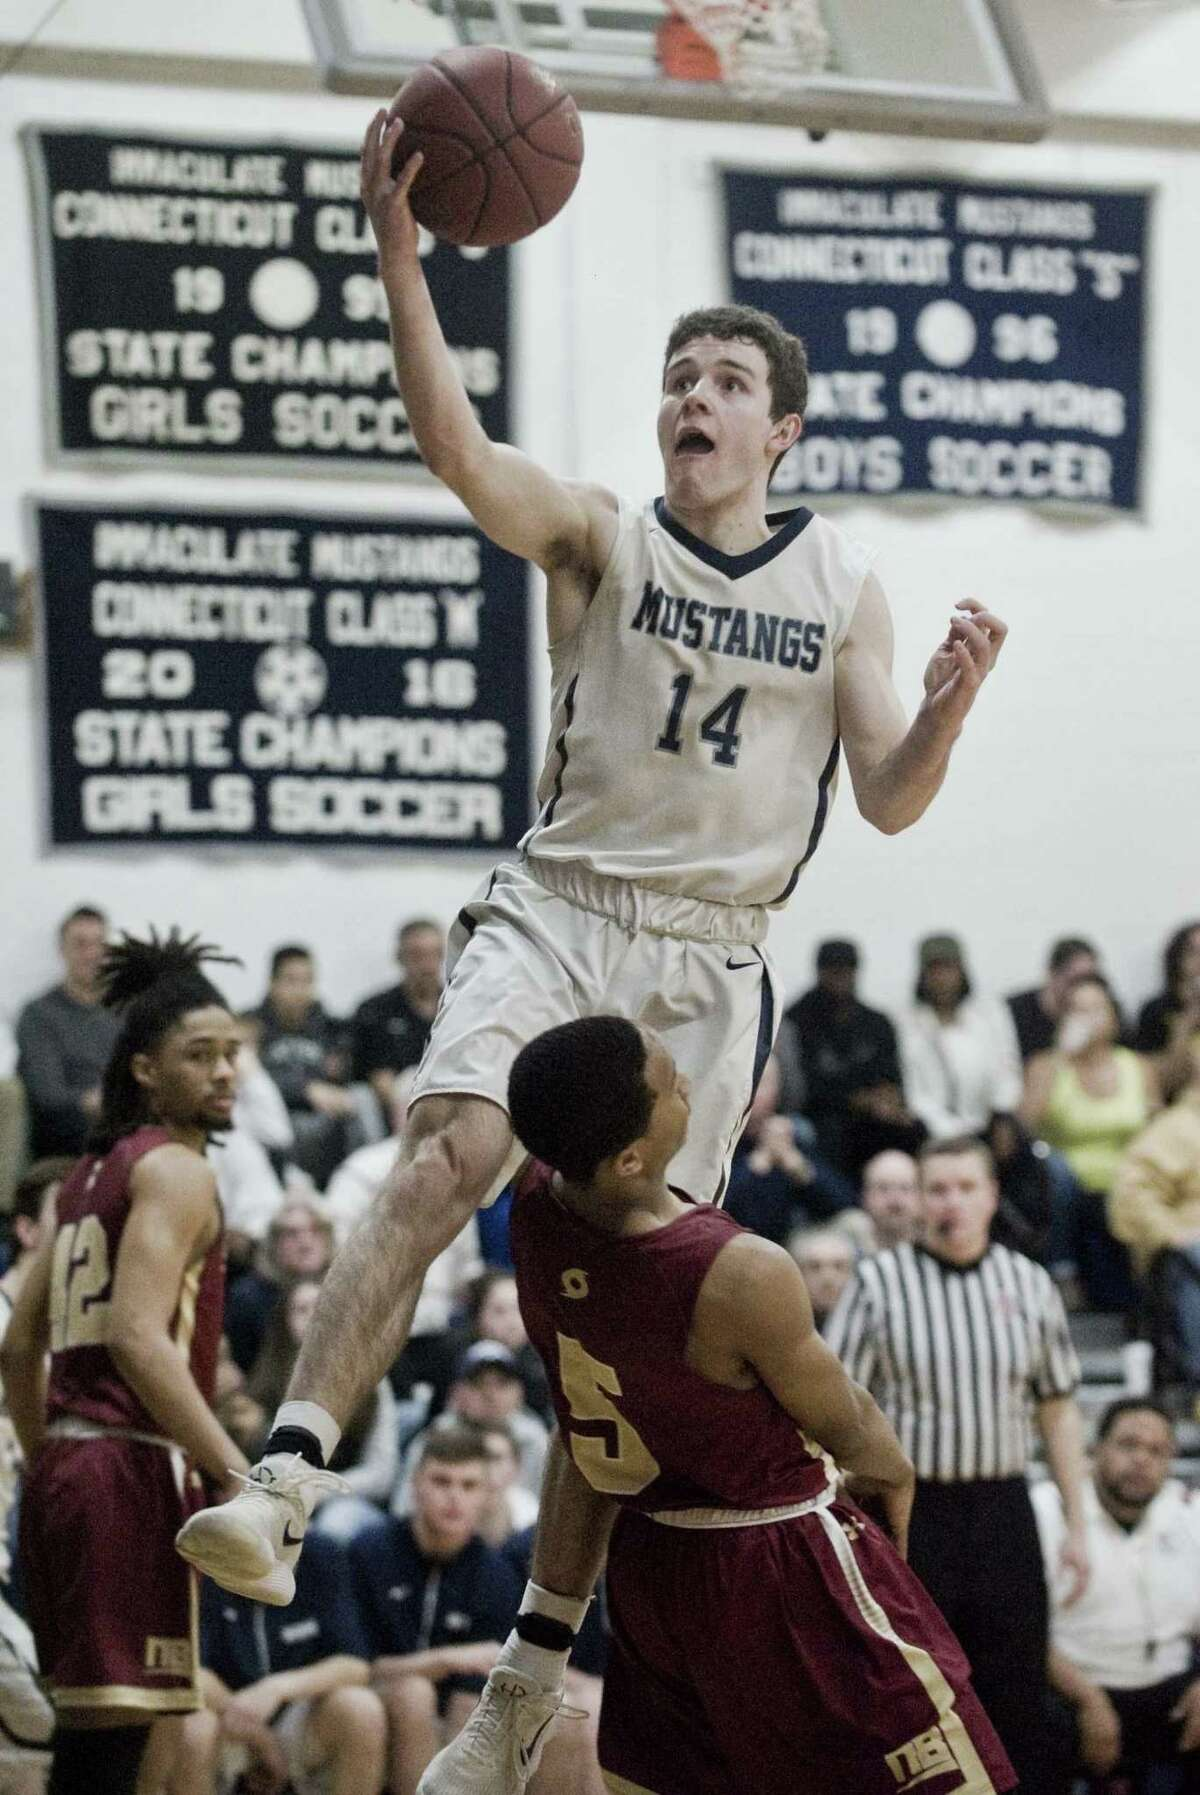 Immaculate High School's Ronan Doherty goes up to the basket in the Division II boys basketball quarterfinals against New Britain High School, played at Immaculate. Monday, March 12, 2018